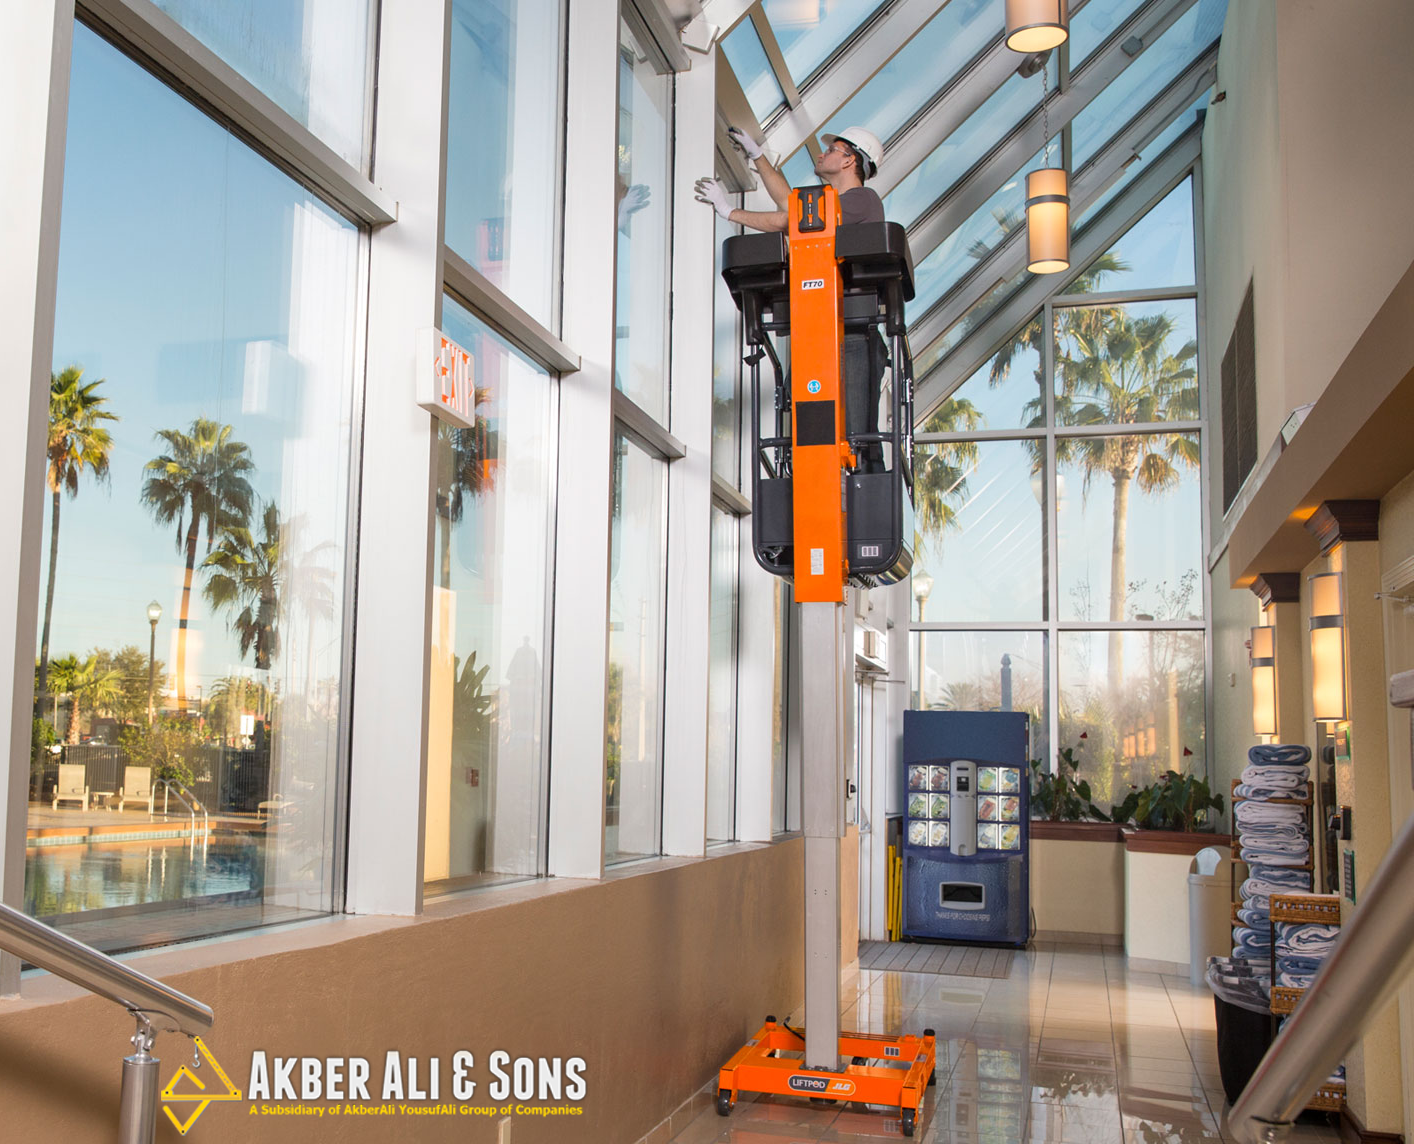 jlg ft70 liftpod personal portable lift is the new telescoping